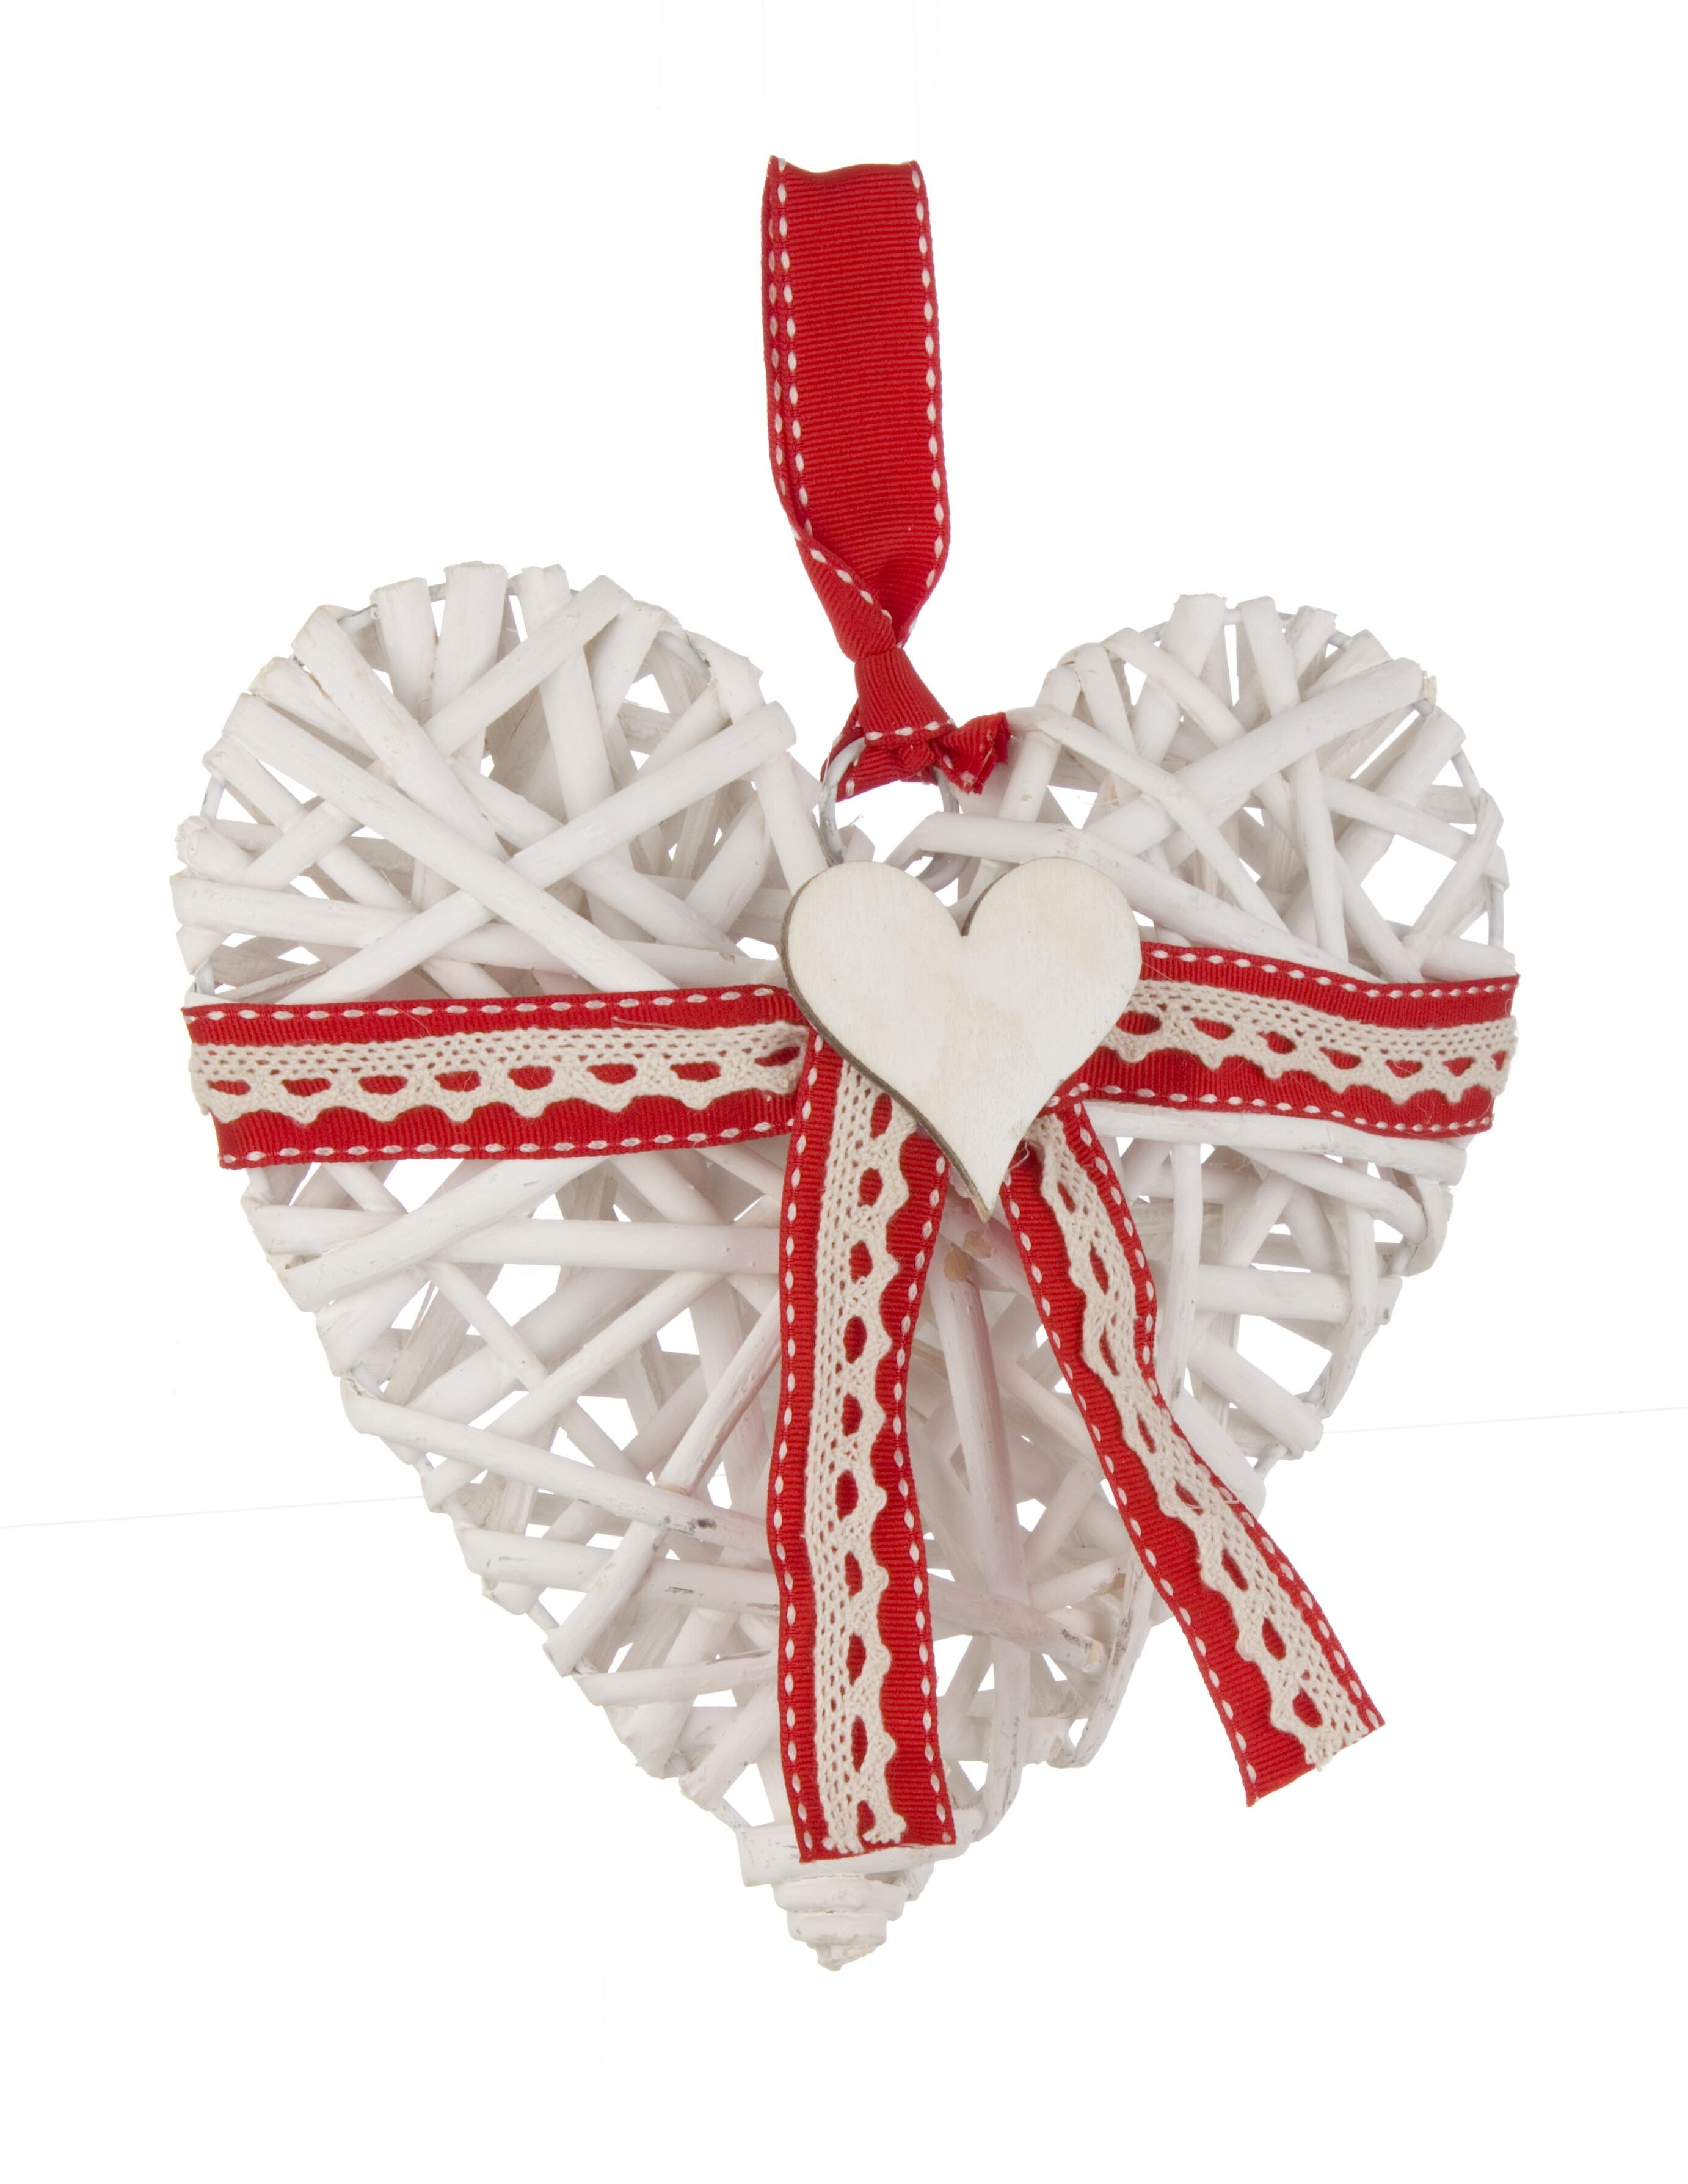 The Seasonal Aisle Misurina Heart Holiday Shaped Ornament Wayfair Co Uk